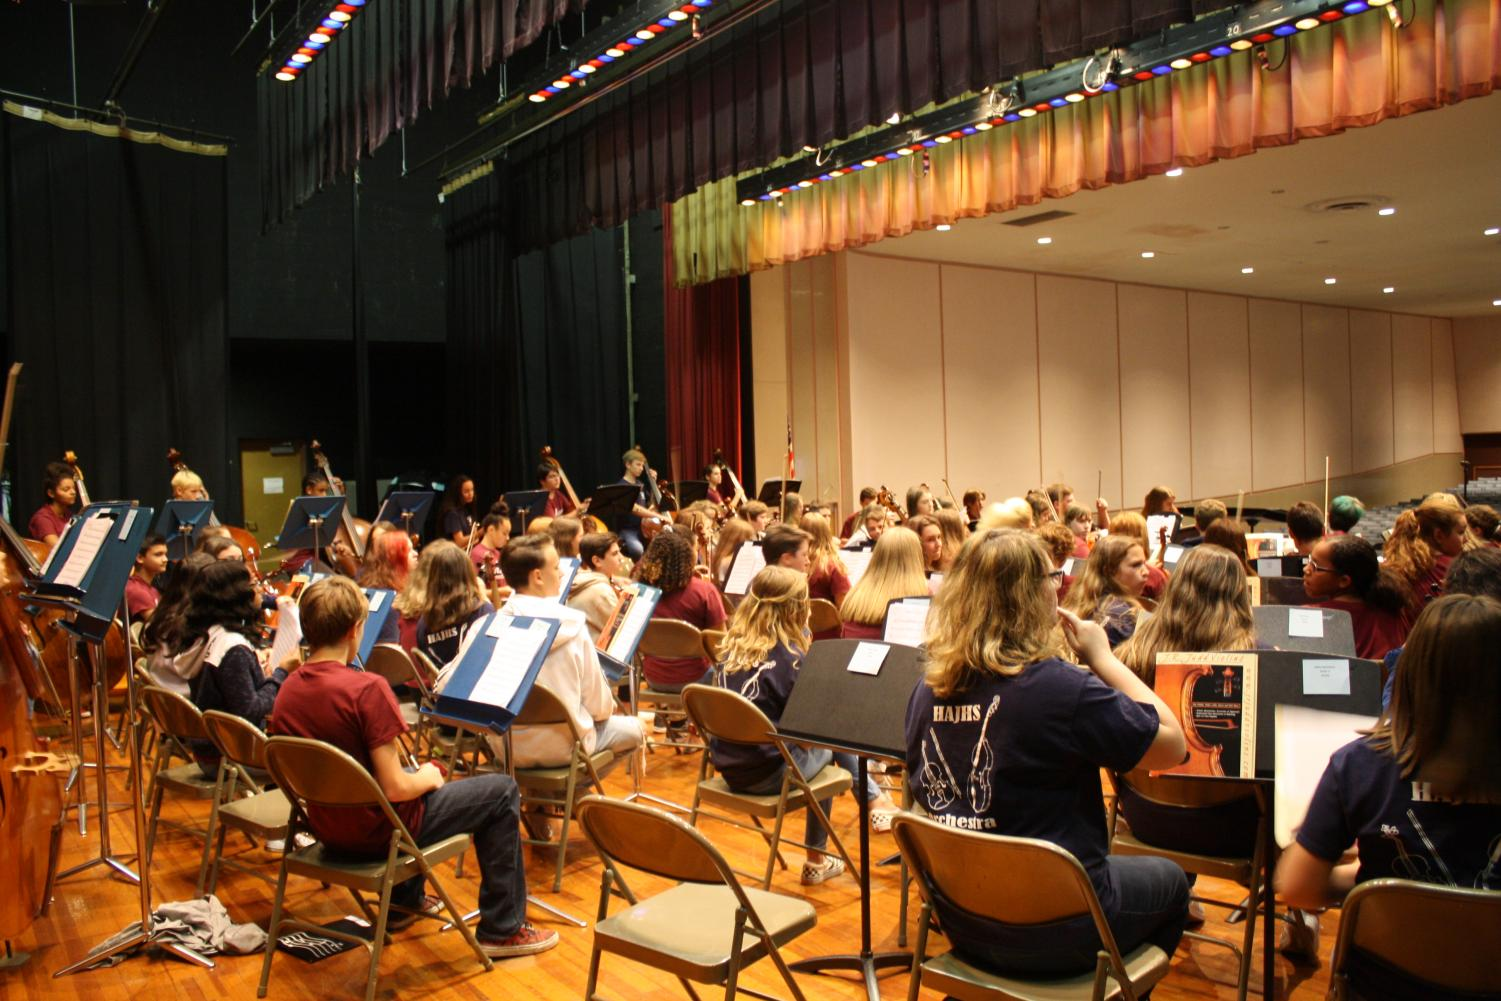 MUSIC TIME! The Altoona and Hollidaysburg orchestra students all cram on to the stage during a concert earlier this year.  On Dec.8 at 3 p.m,  the youth orchestra students will perfom a concert honoring Kiera Chirdon and it will be held at the Mishler theater.